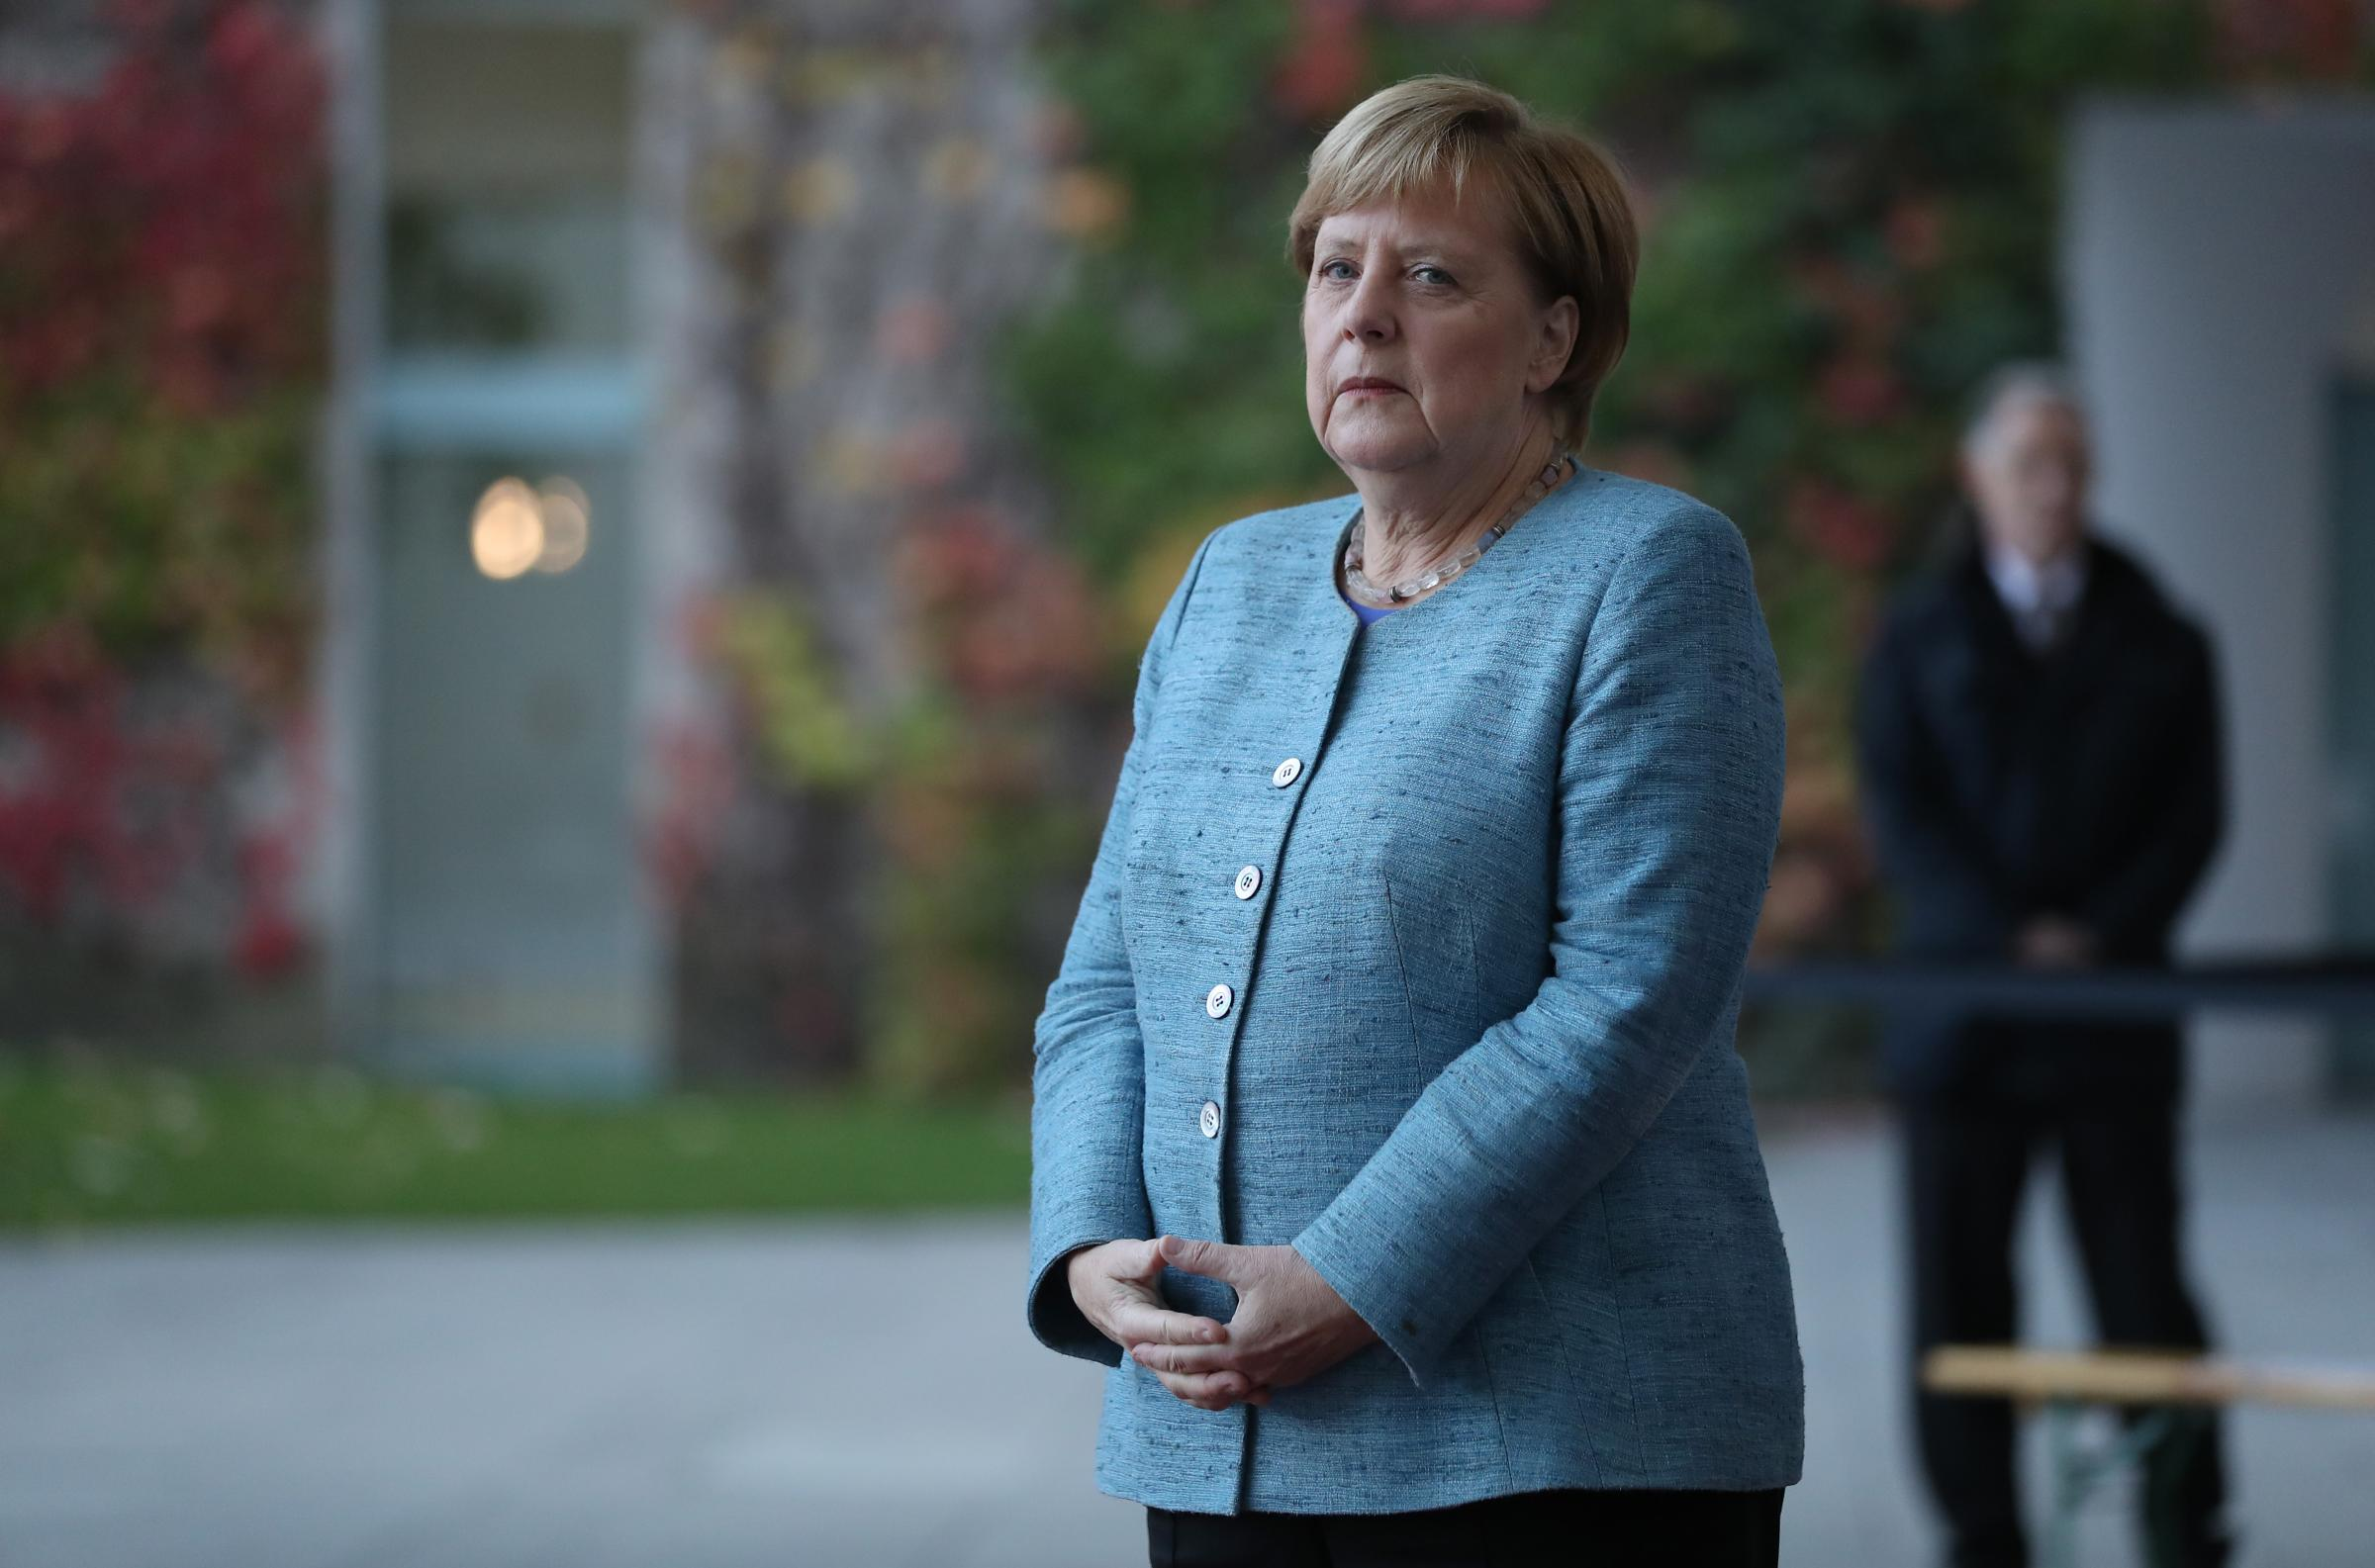 The German chancellor will soon step down after 13 years in power